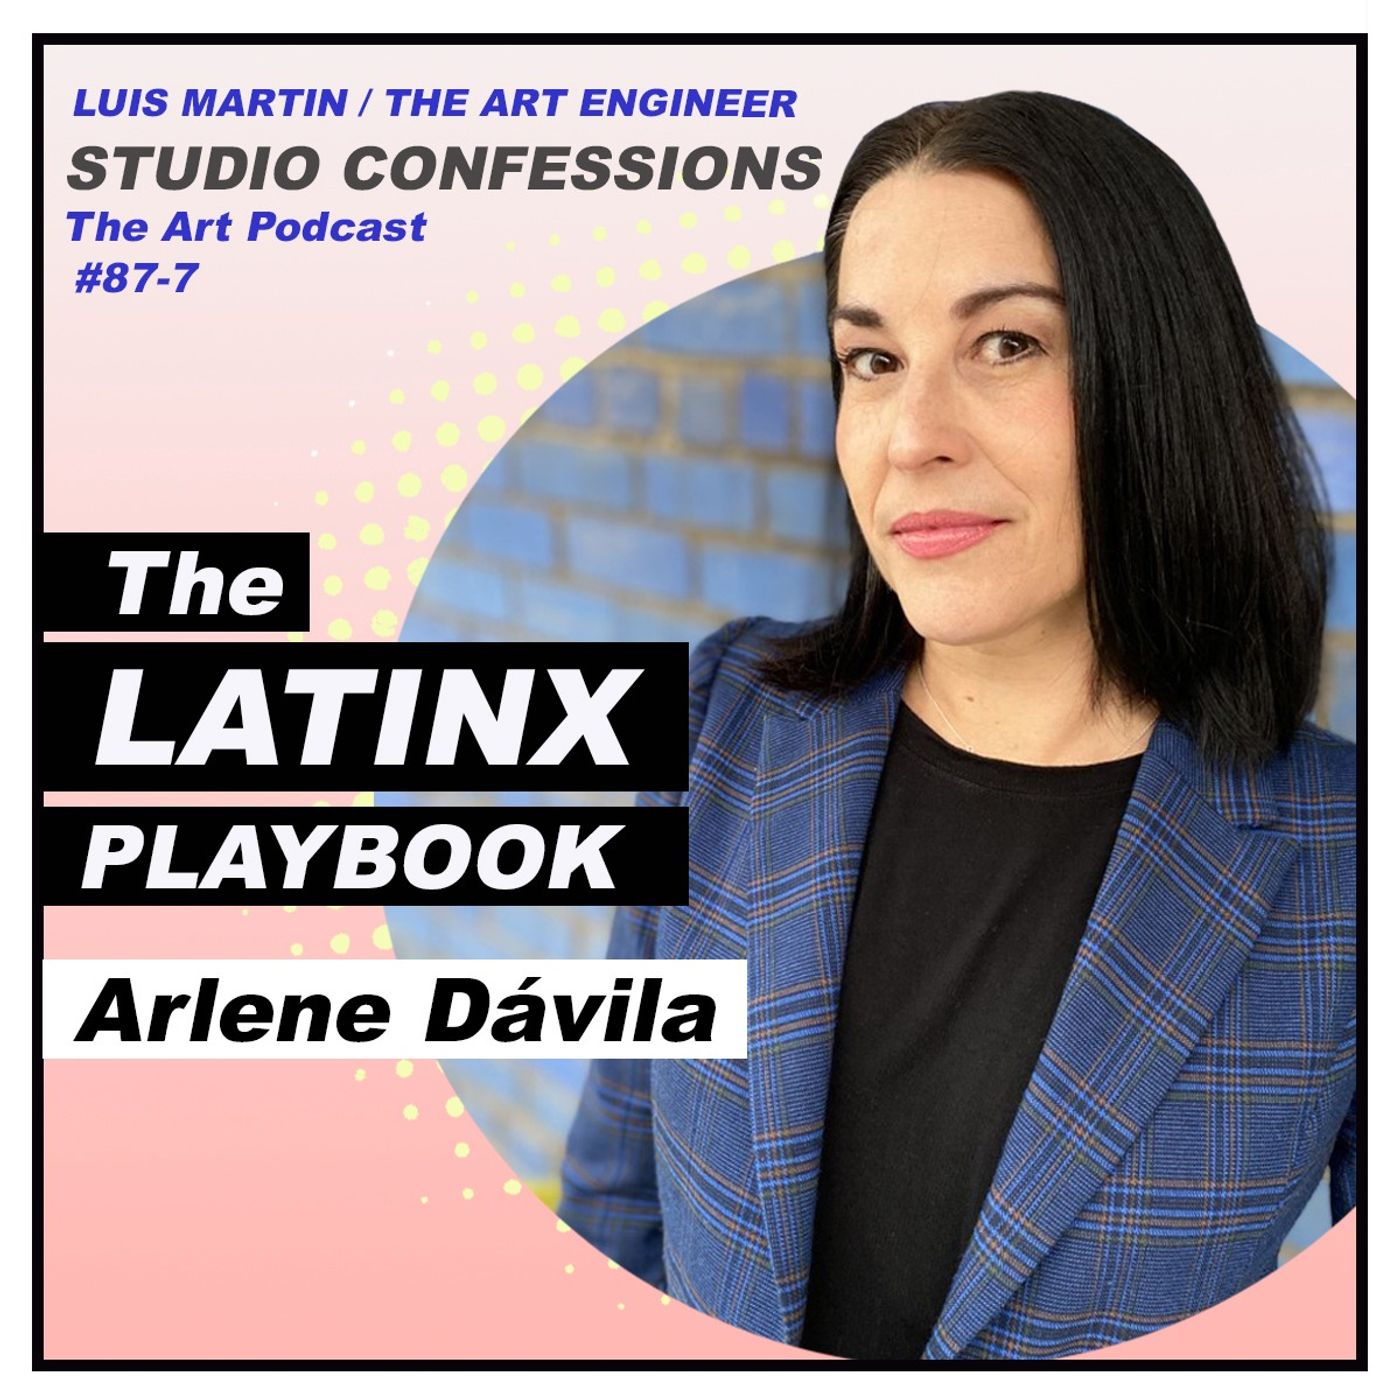 Arlene Dávila: The Latinx Playbook